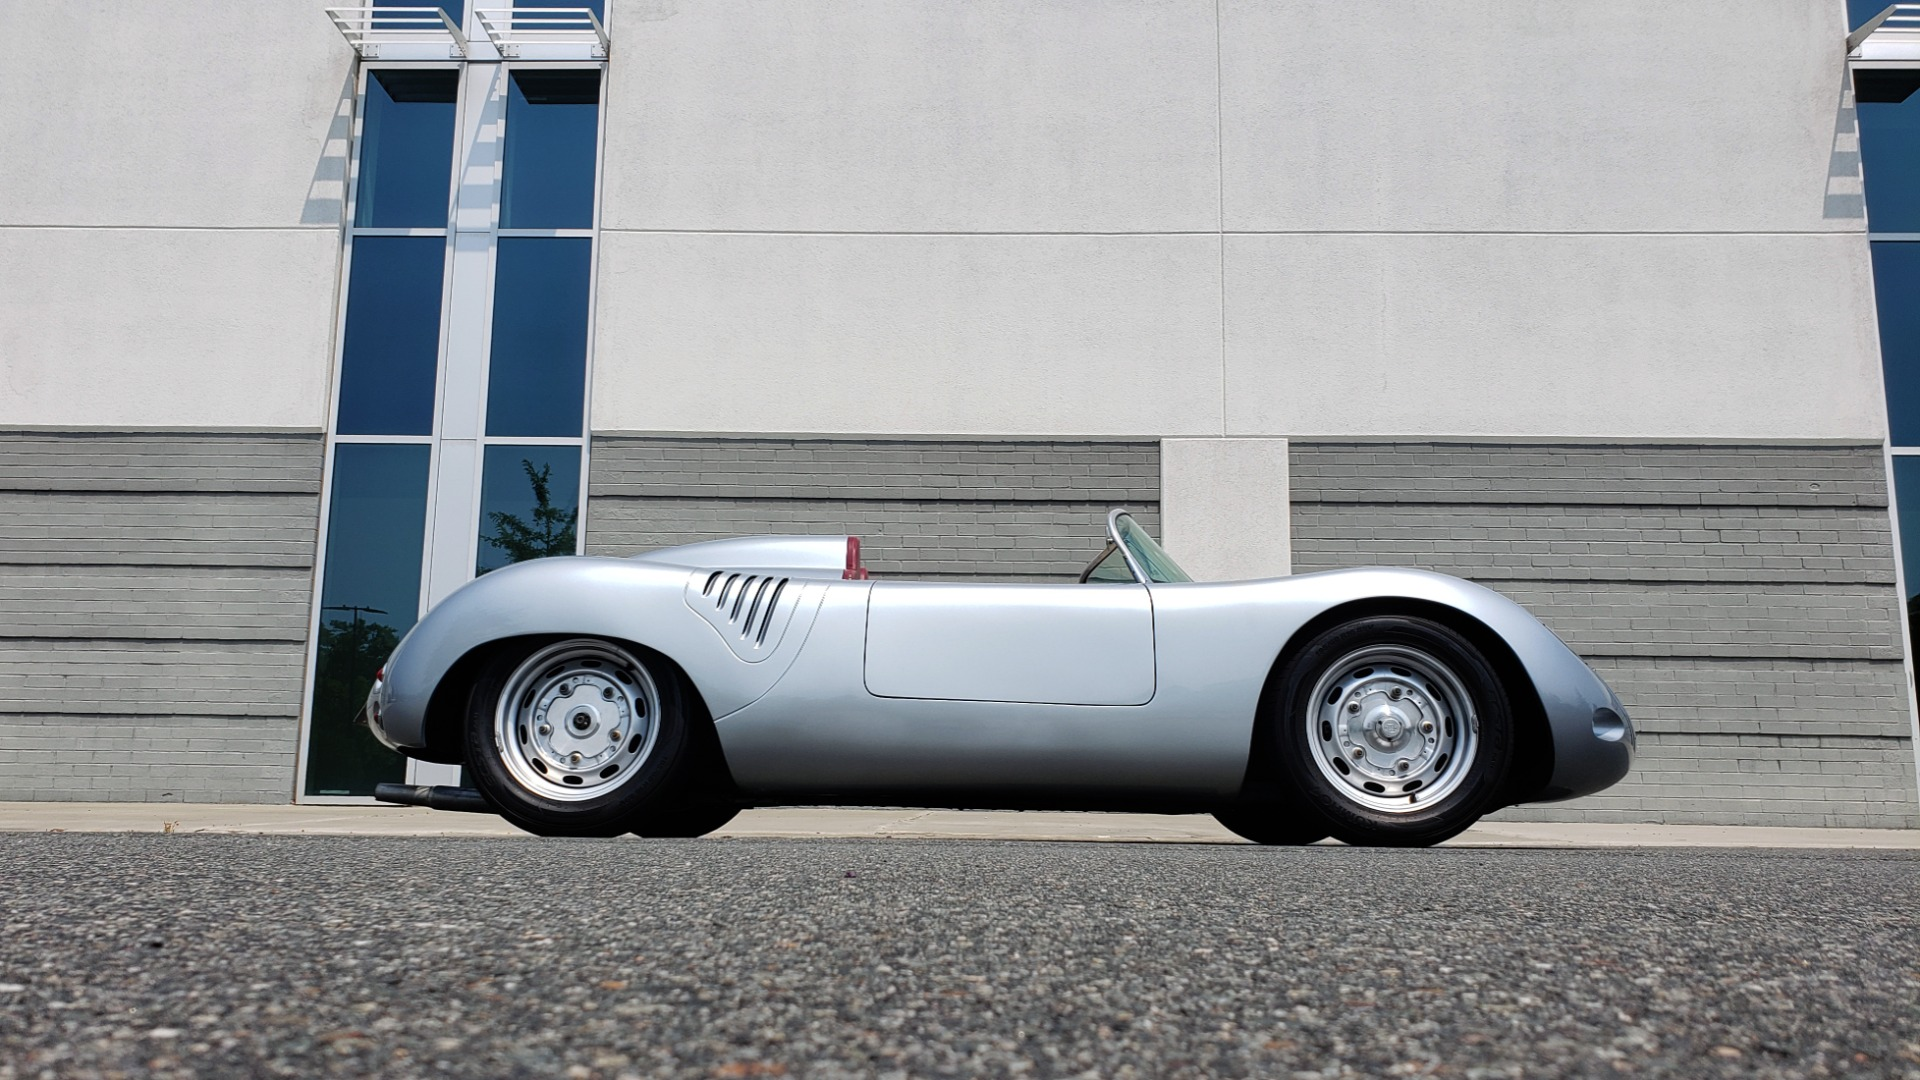 Used 1960 Porsche 718 RSK SPYDER REPLICA / 2275CC W/44MM WEBER (160HP) / 4-SPD MANUAL for sale $39,999 at Formula Imports in Charlotte NC 28227 7